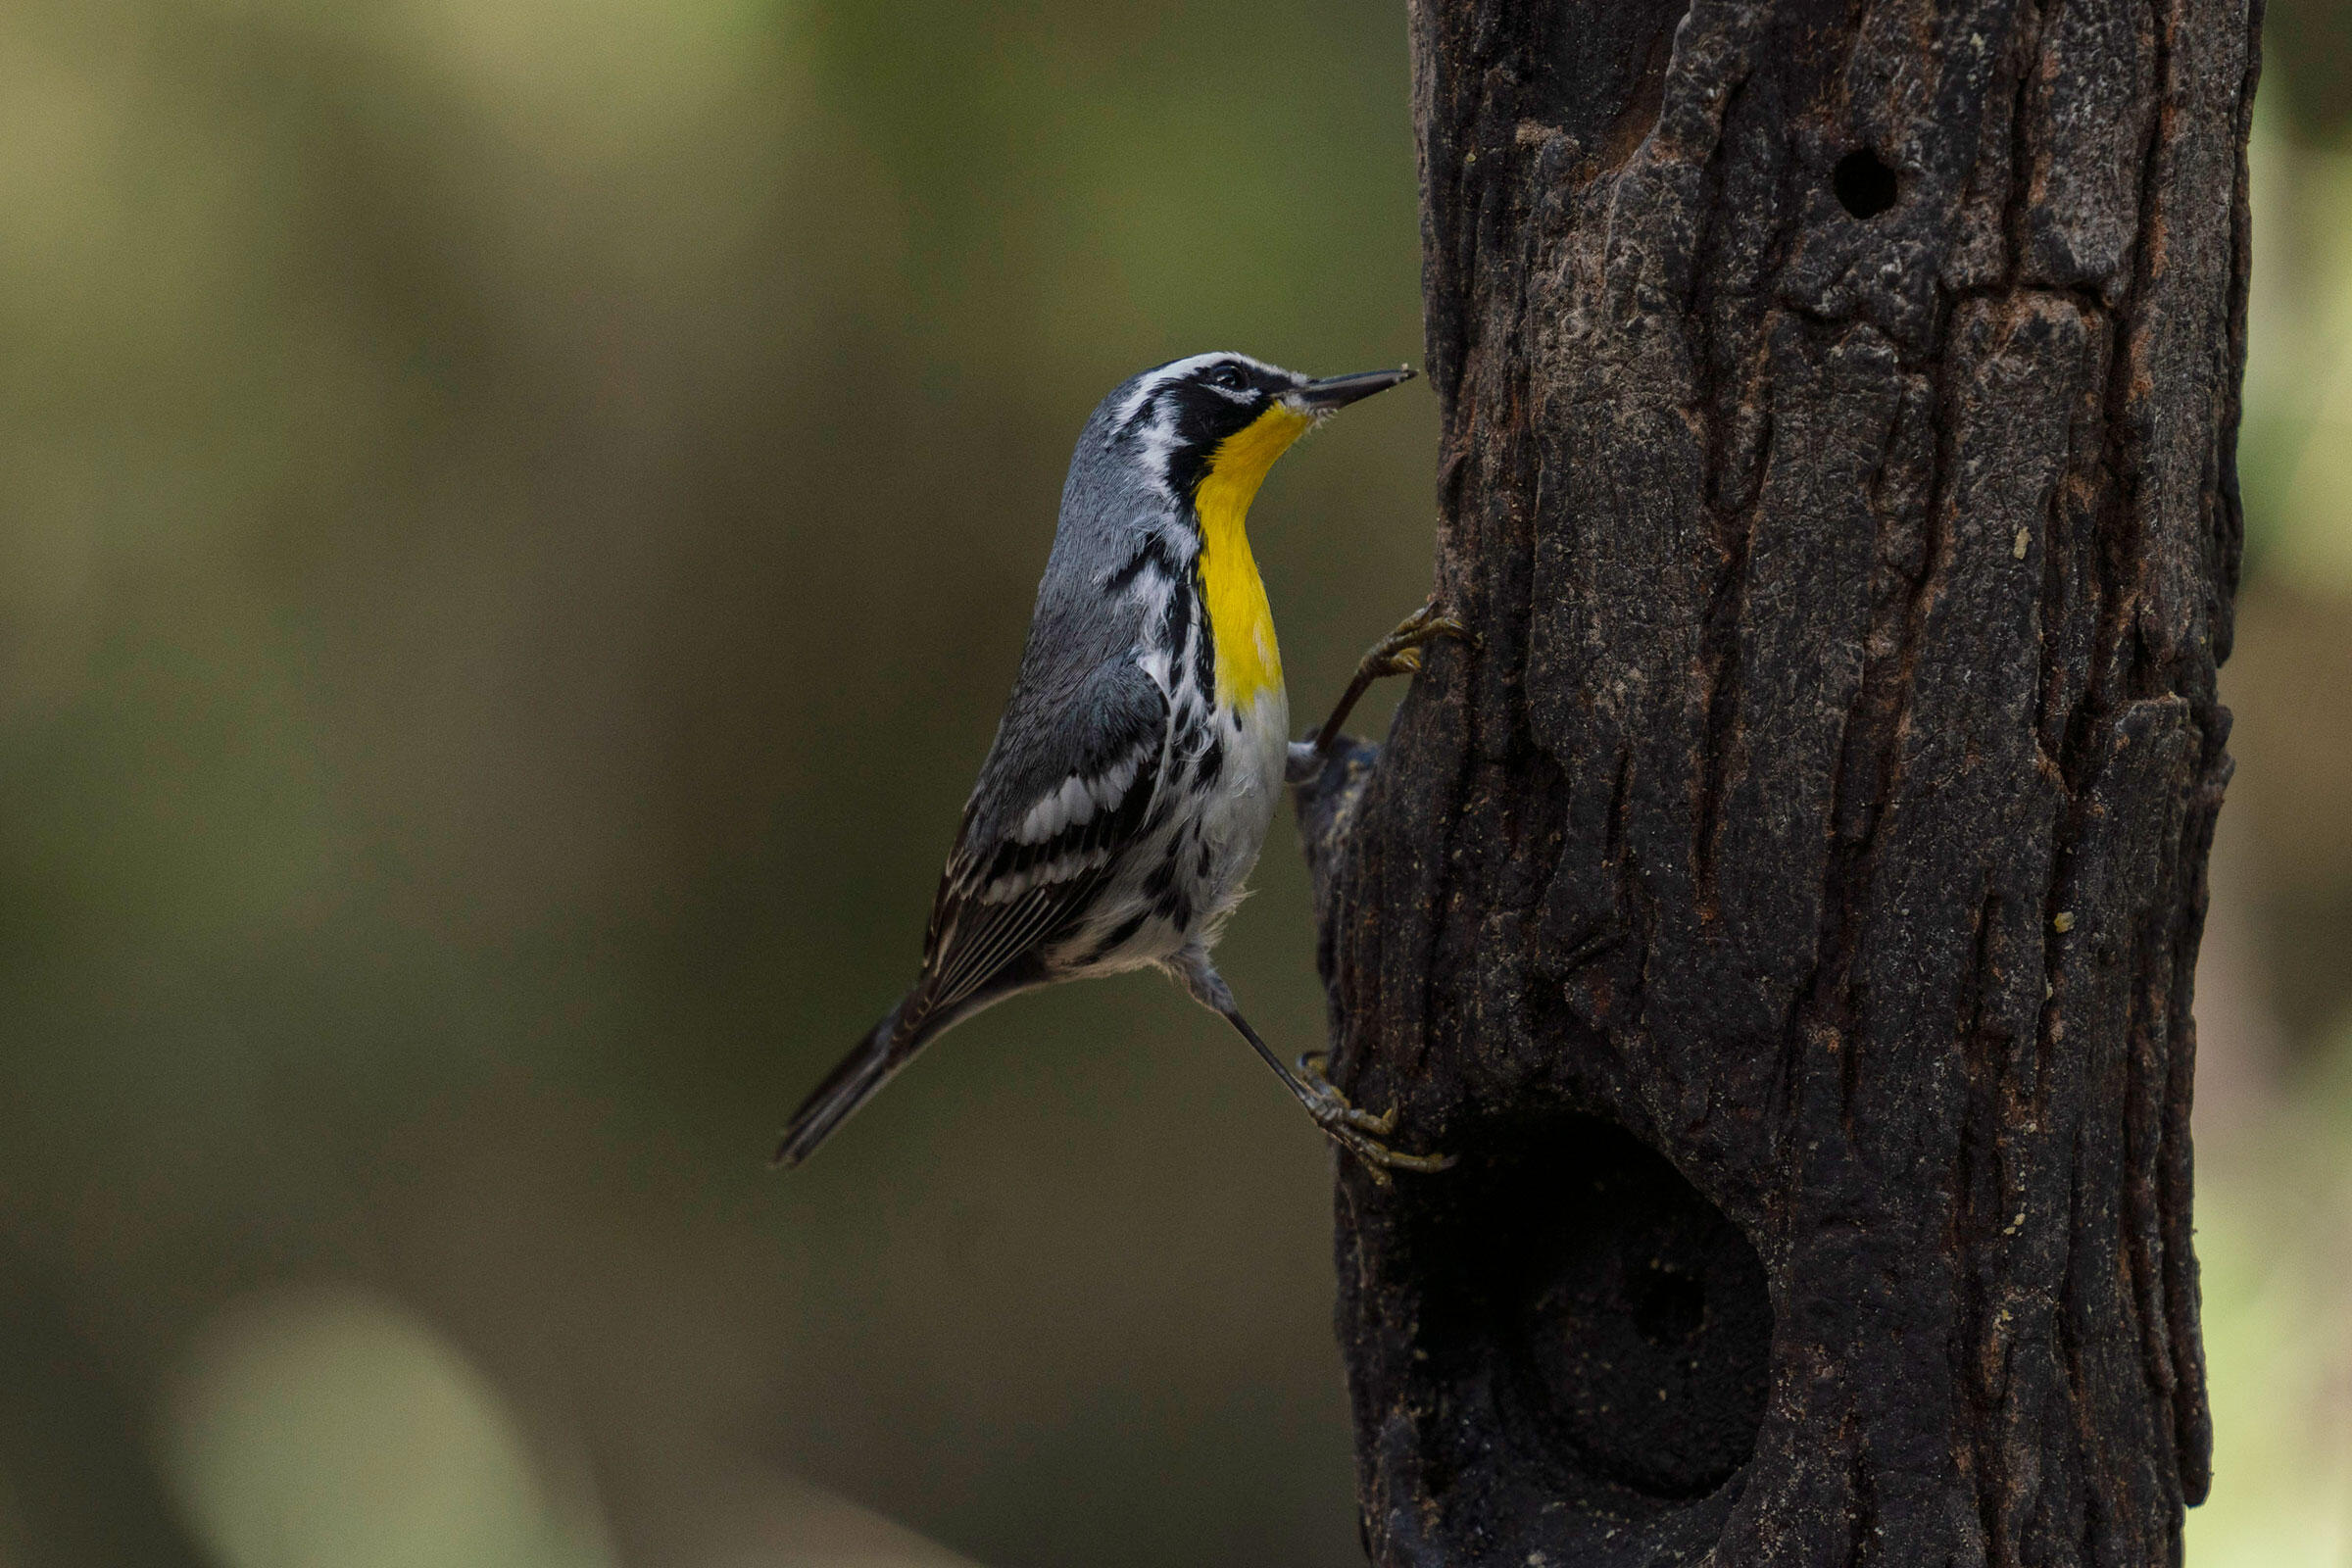 The birders spot a Yellow-throated Warbler during the Christmas Bird Count at Bentsen-Rio Grande Valley State Park. This is a rare bird found only during winter and fall at the park. Verónica G. Cárdenas